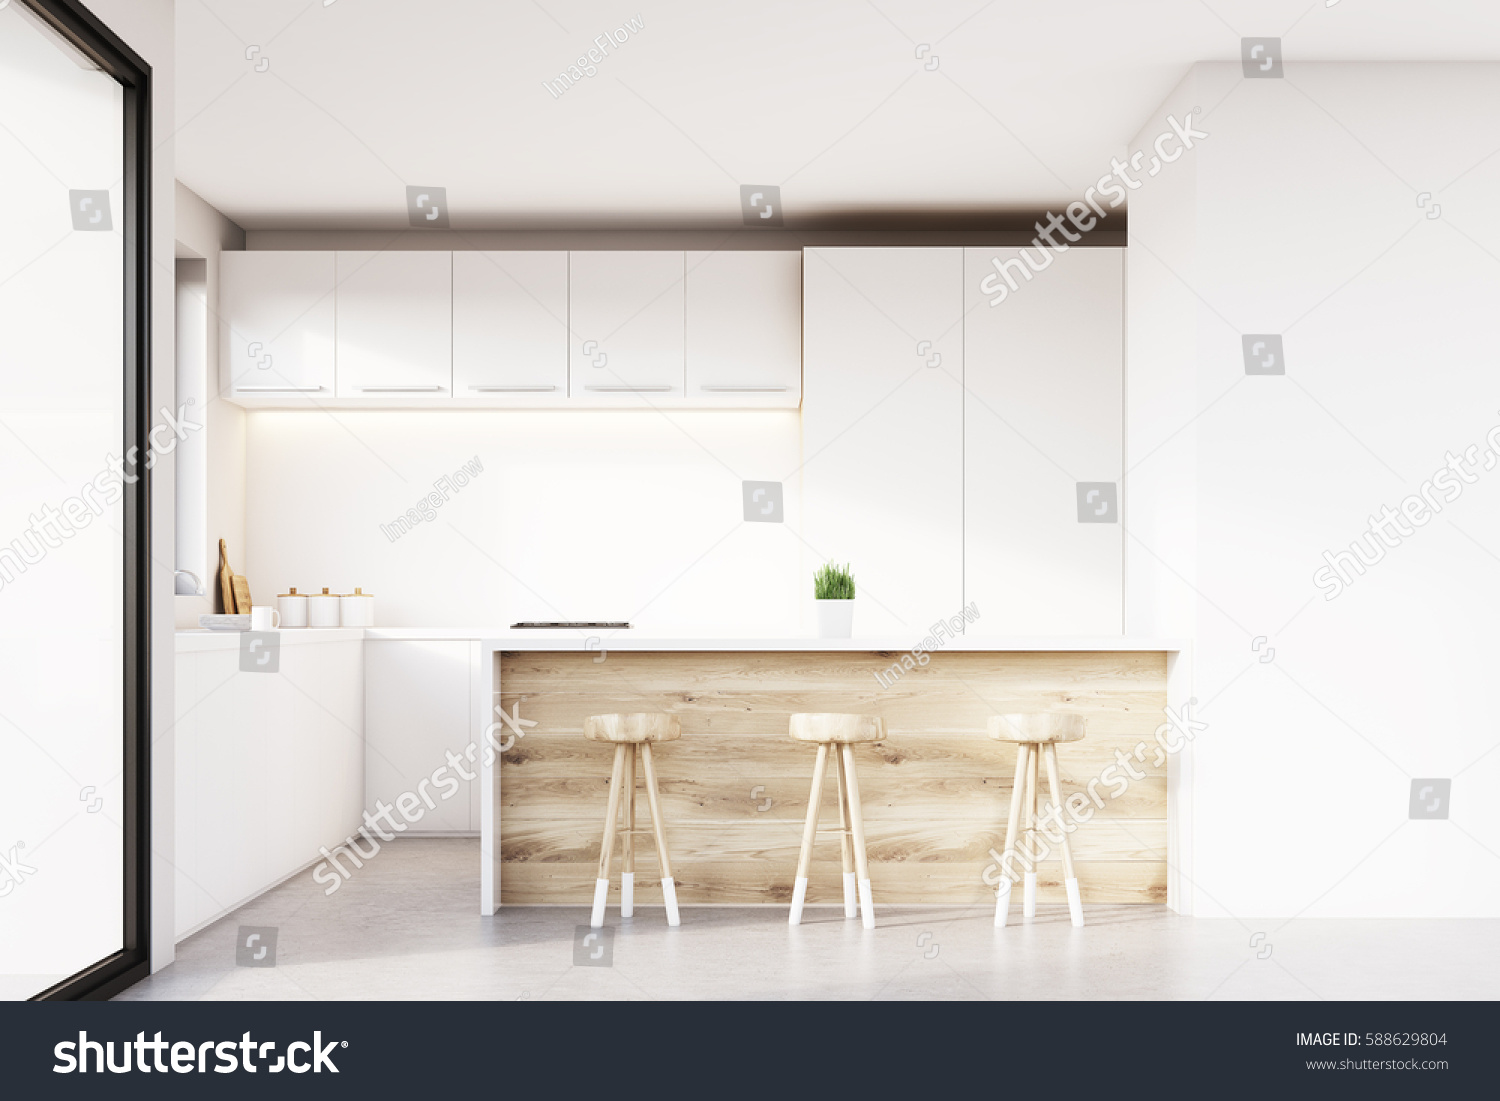 Front View Kitchen Interior Light Wooden Stock